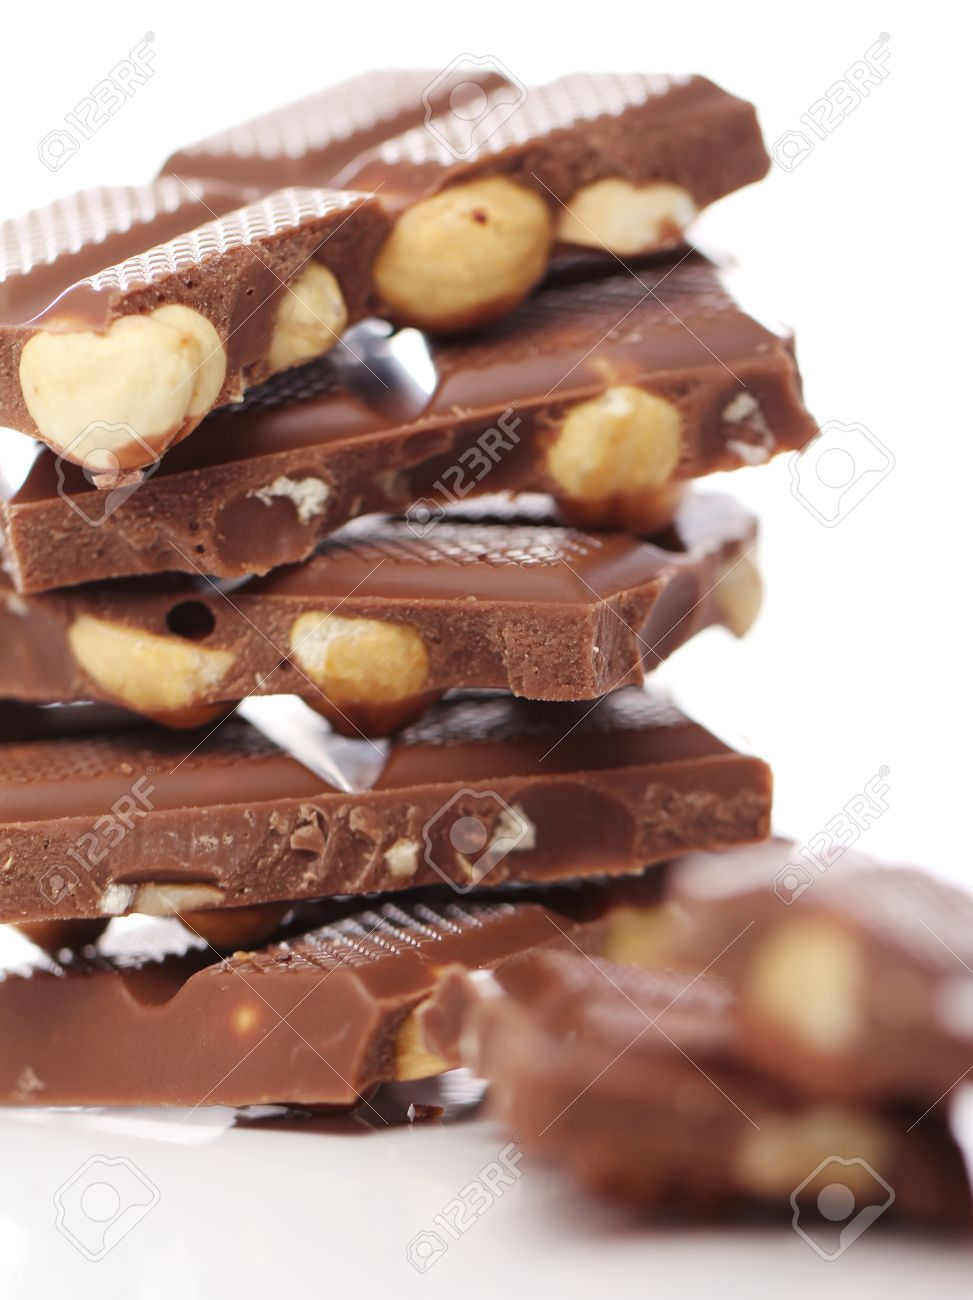 Pieces Of Milk Chocolate With Nuts Against White Background Stock ...